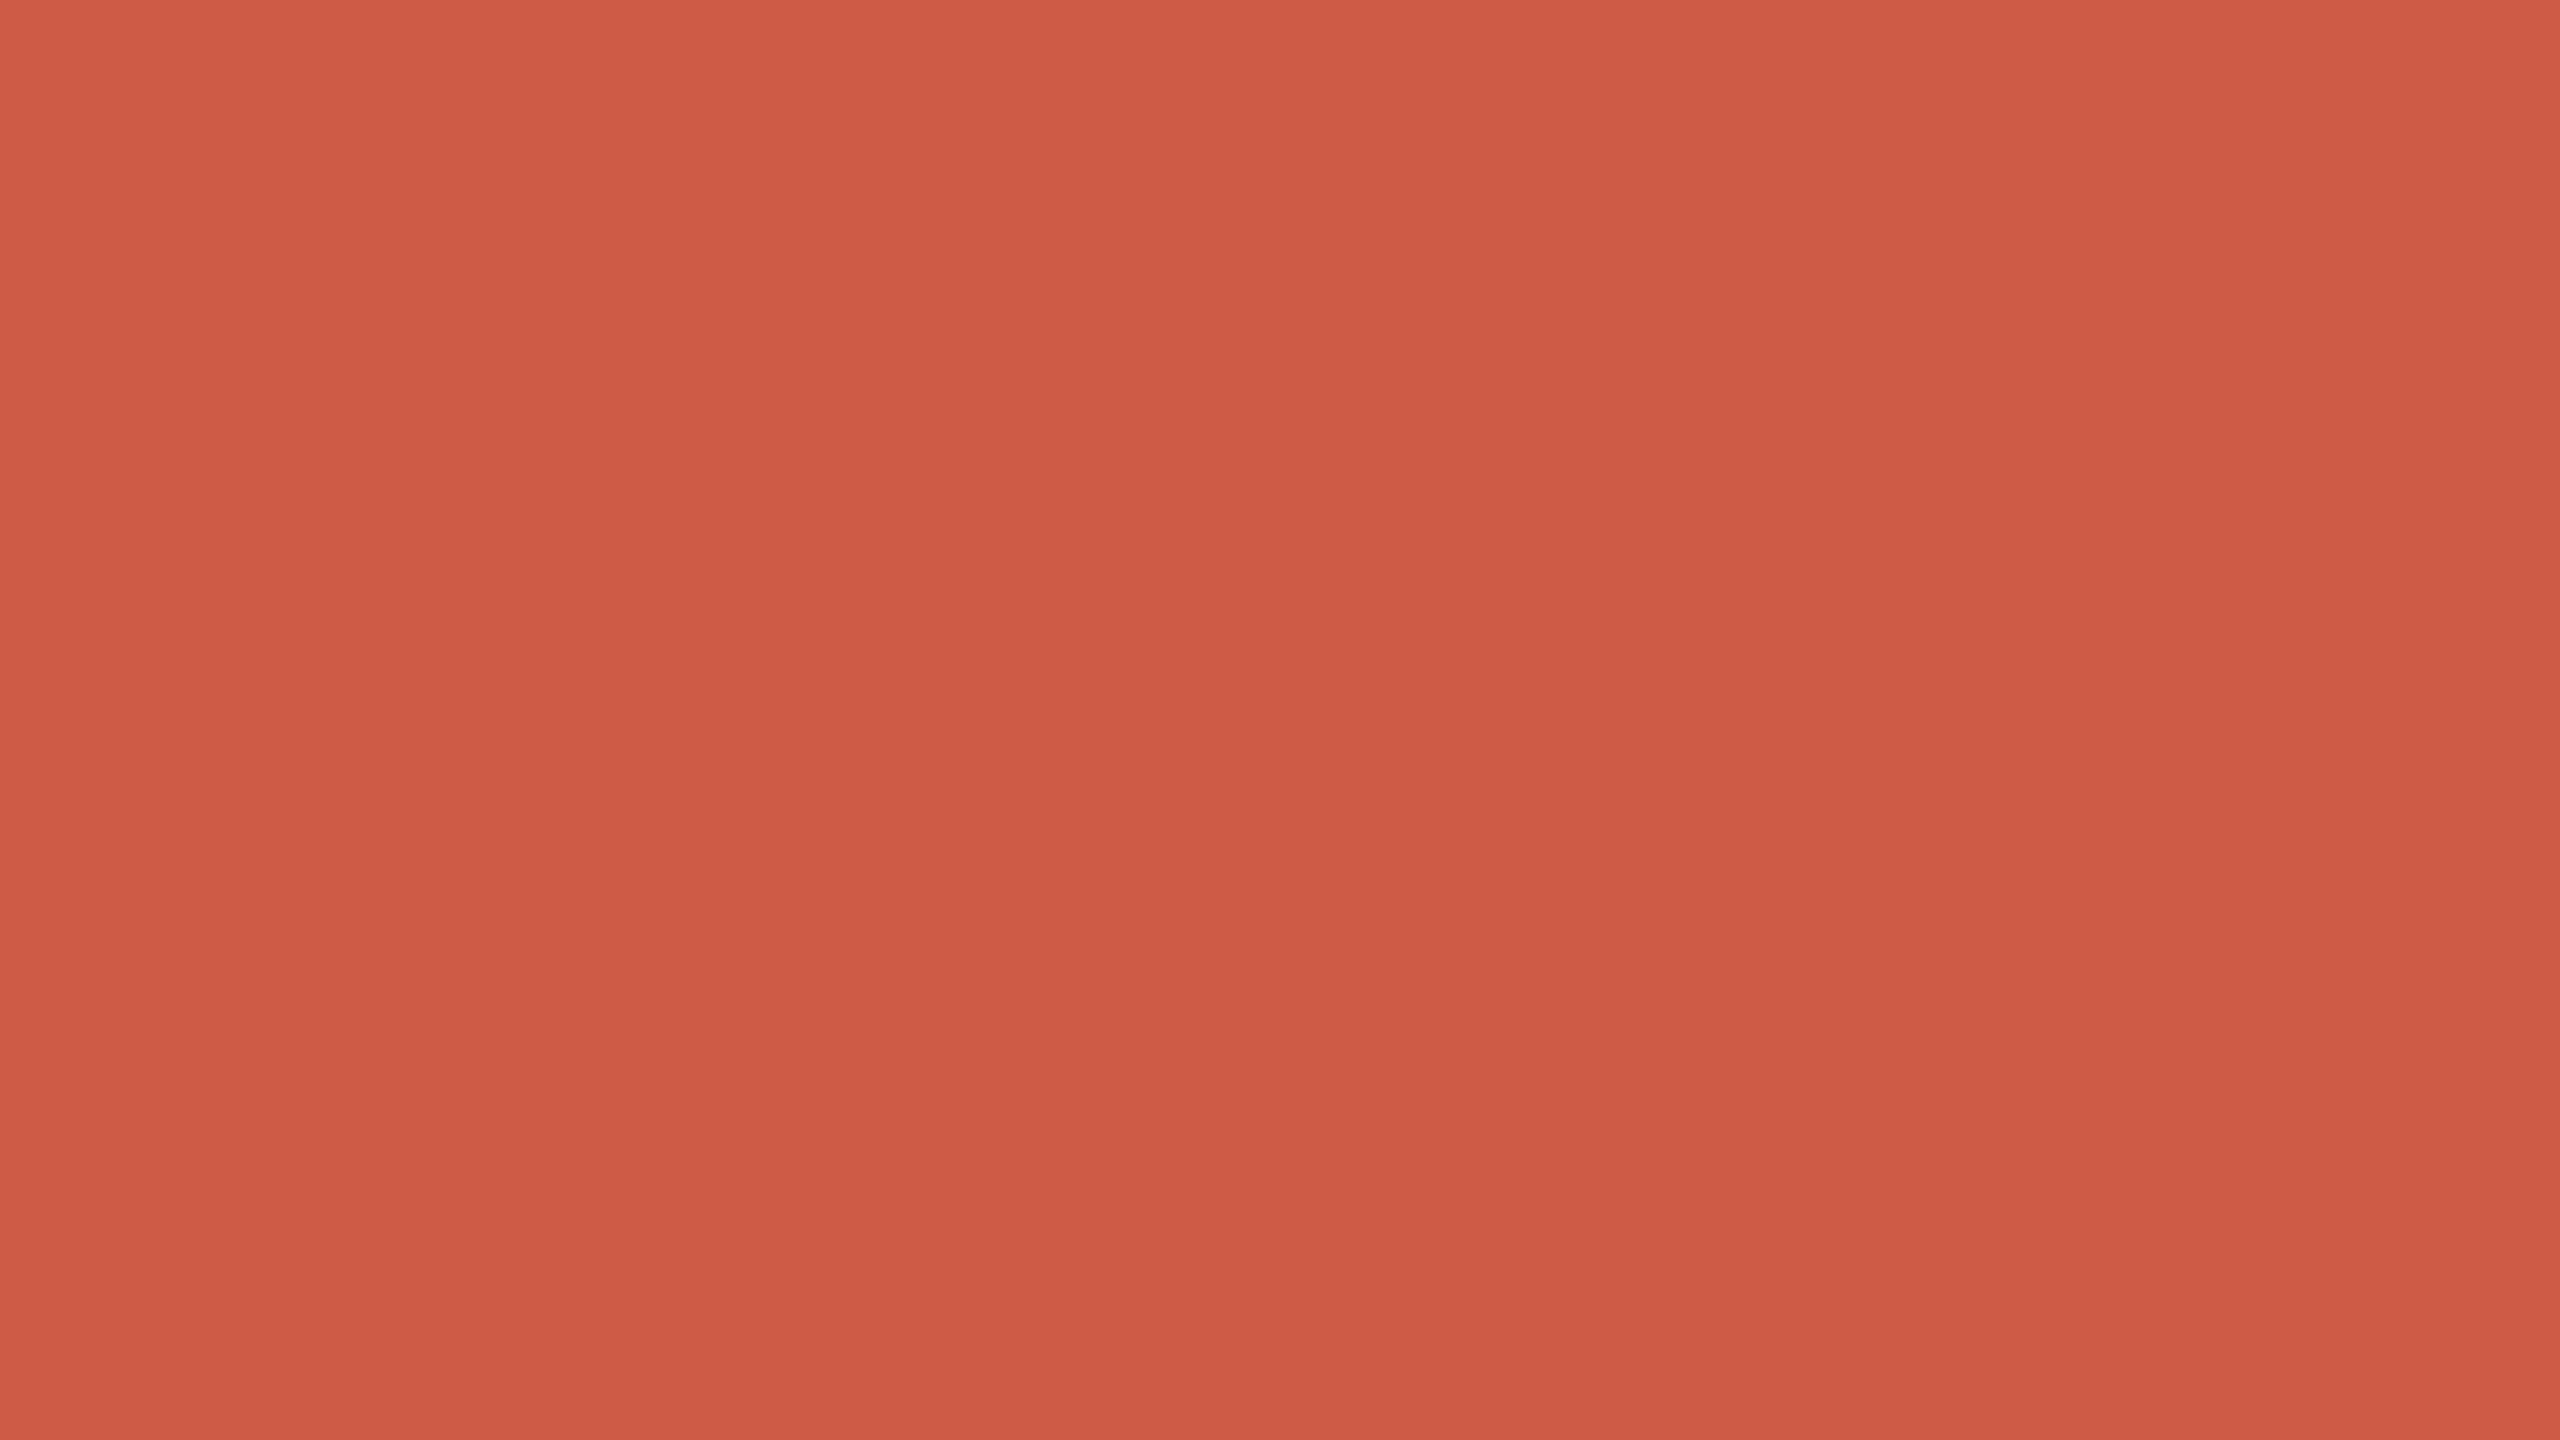 2560x1440 dark coral solid color background